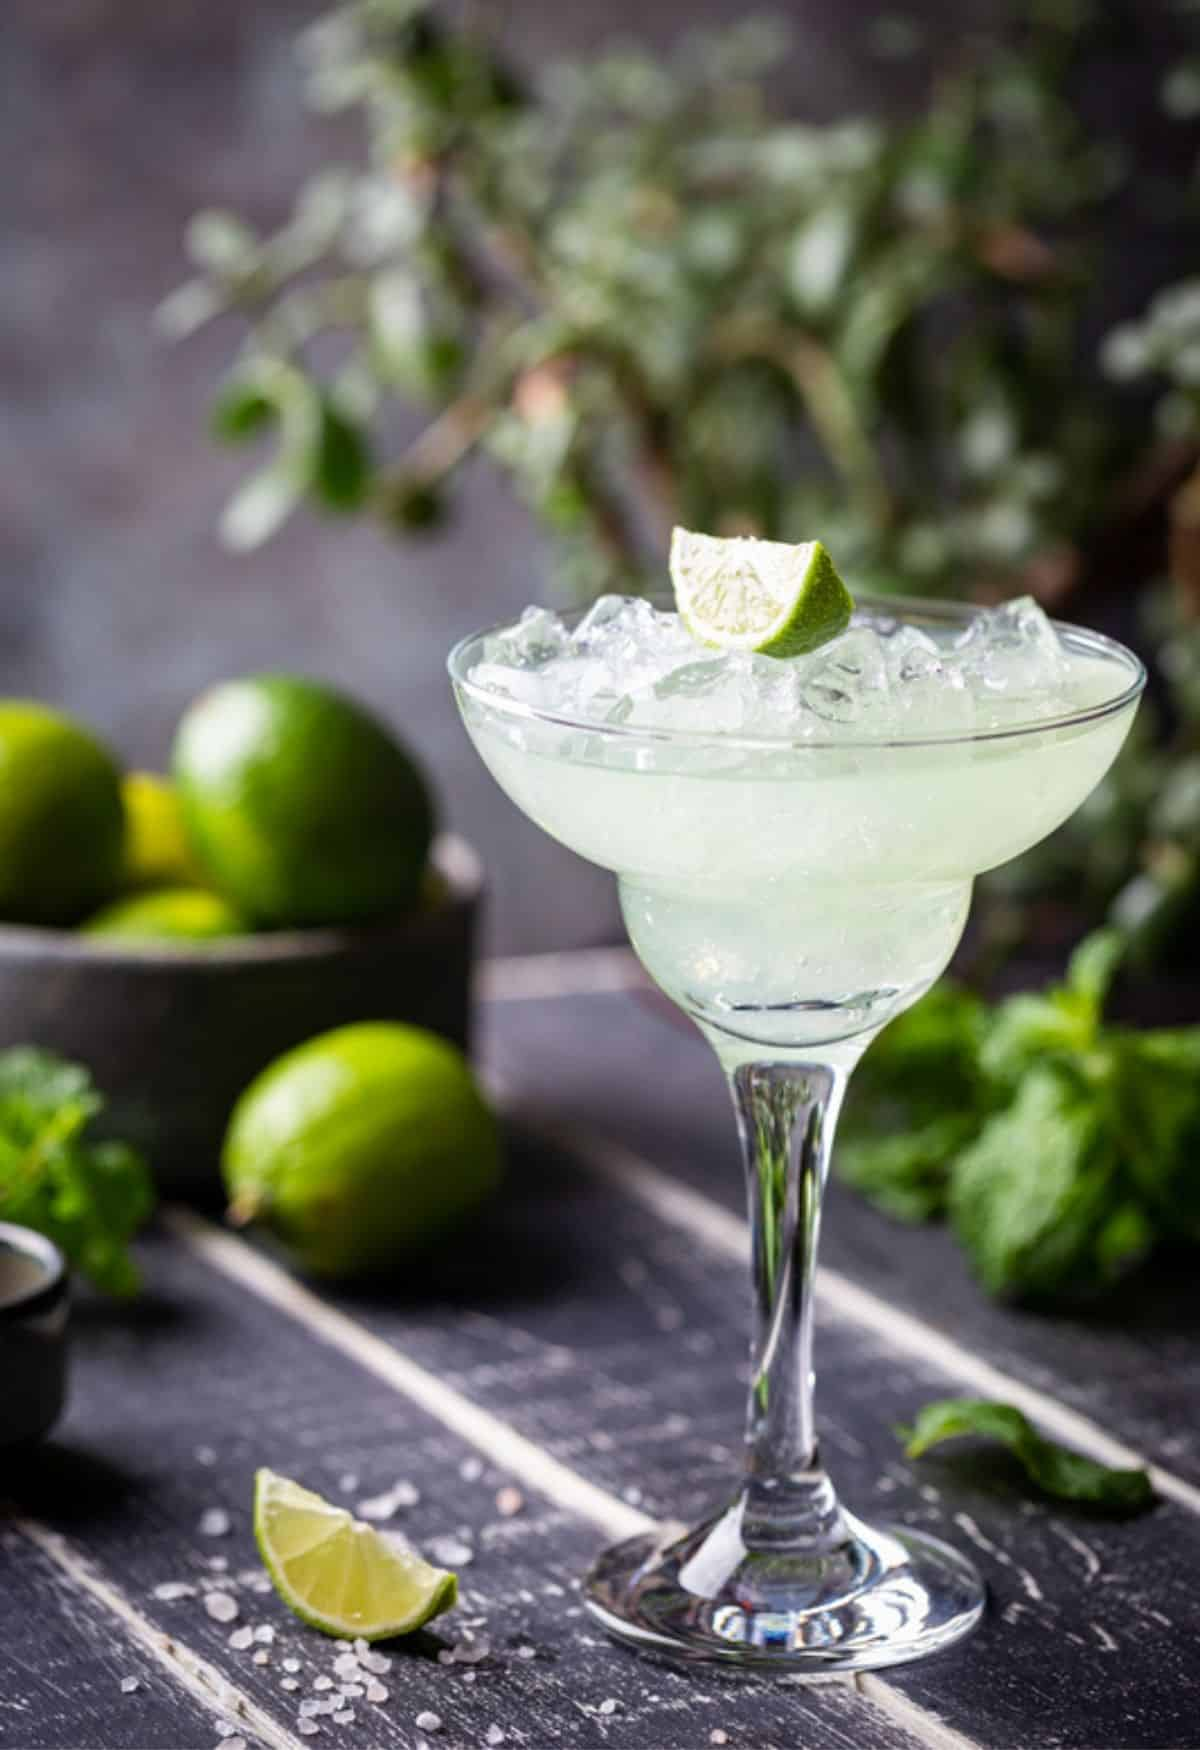 Lime Margarita and limes